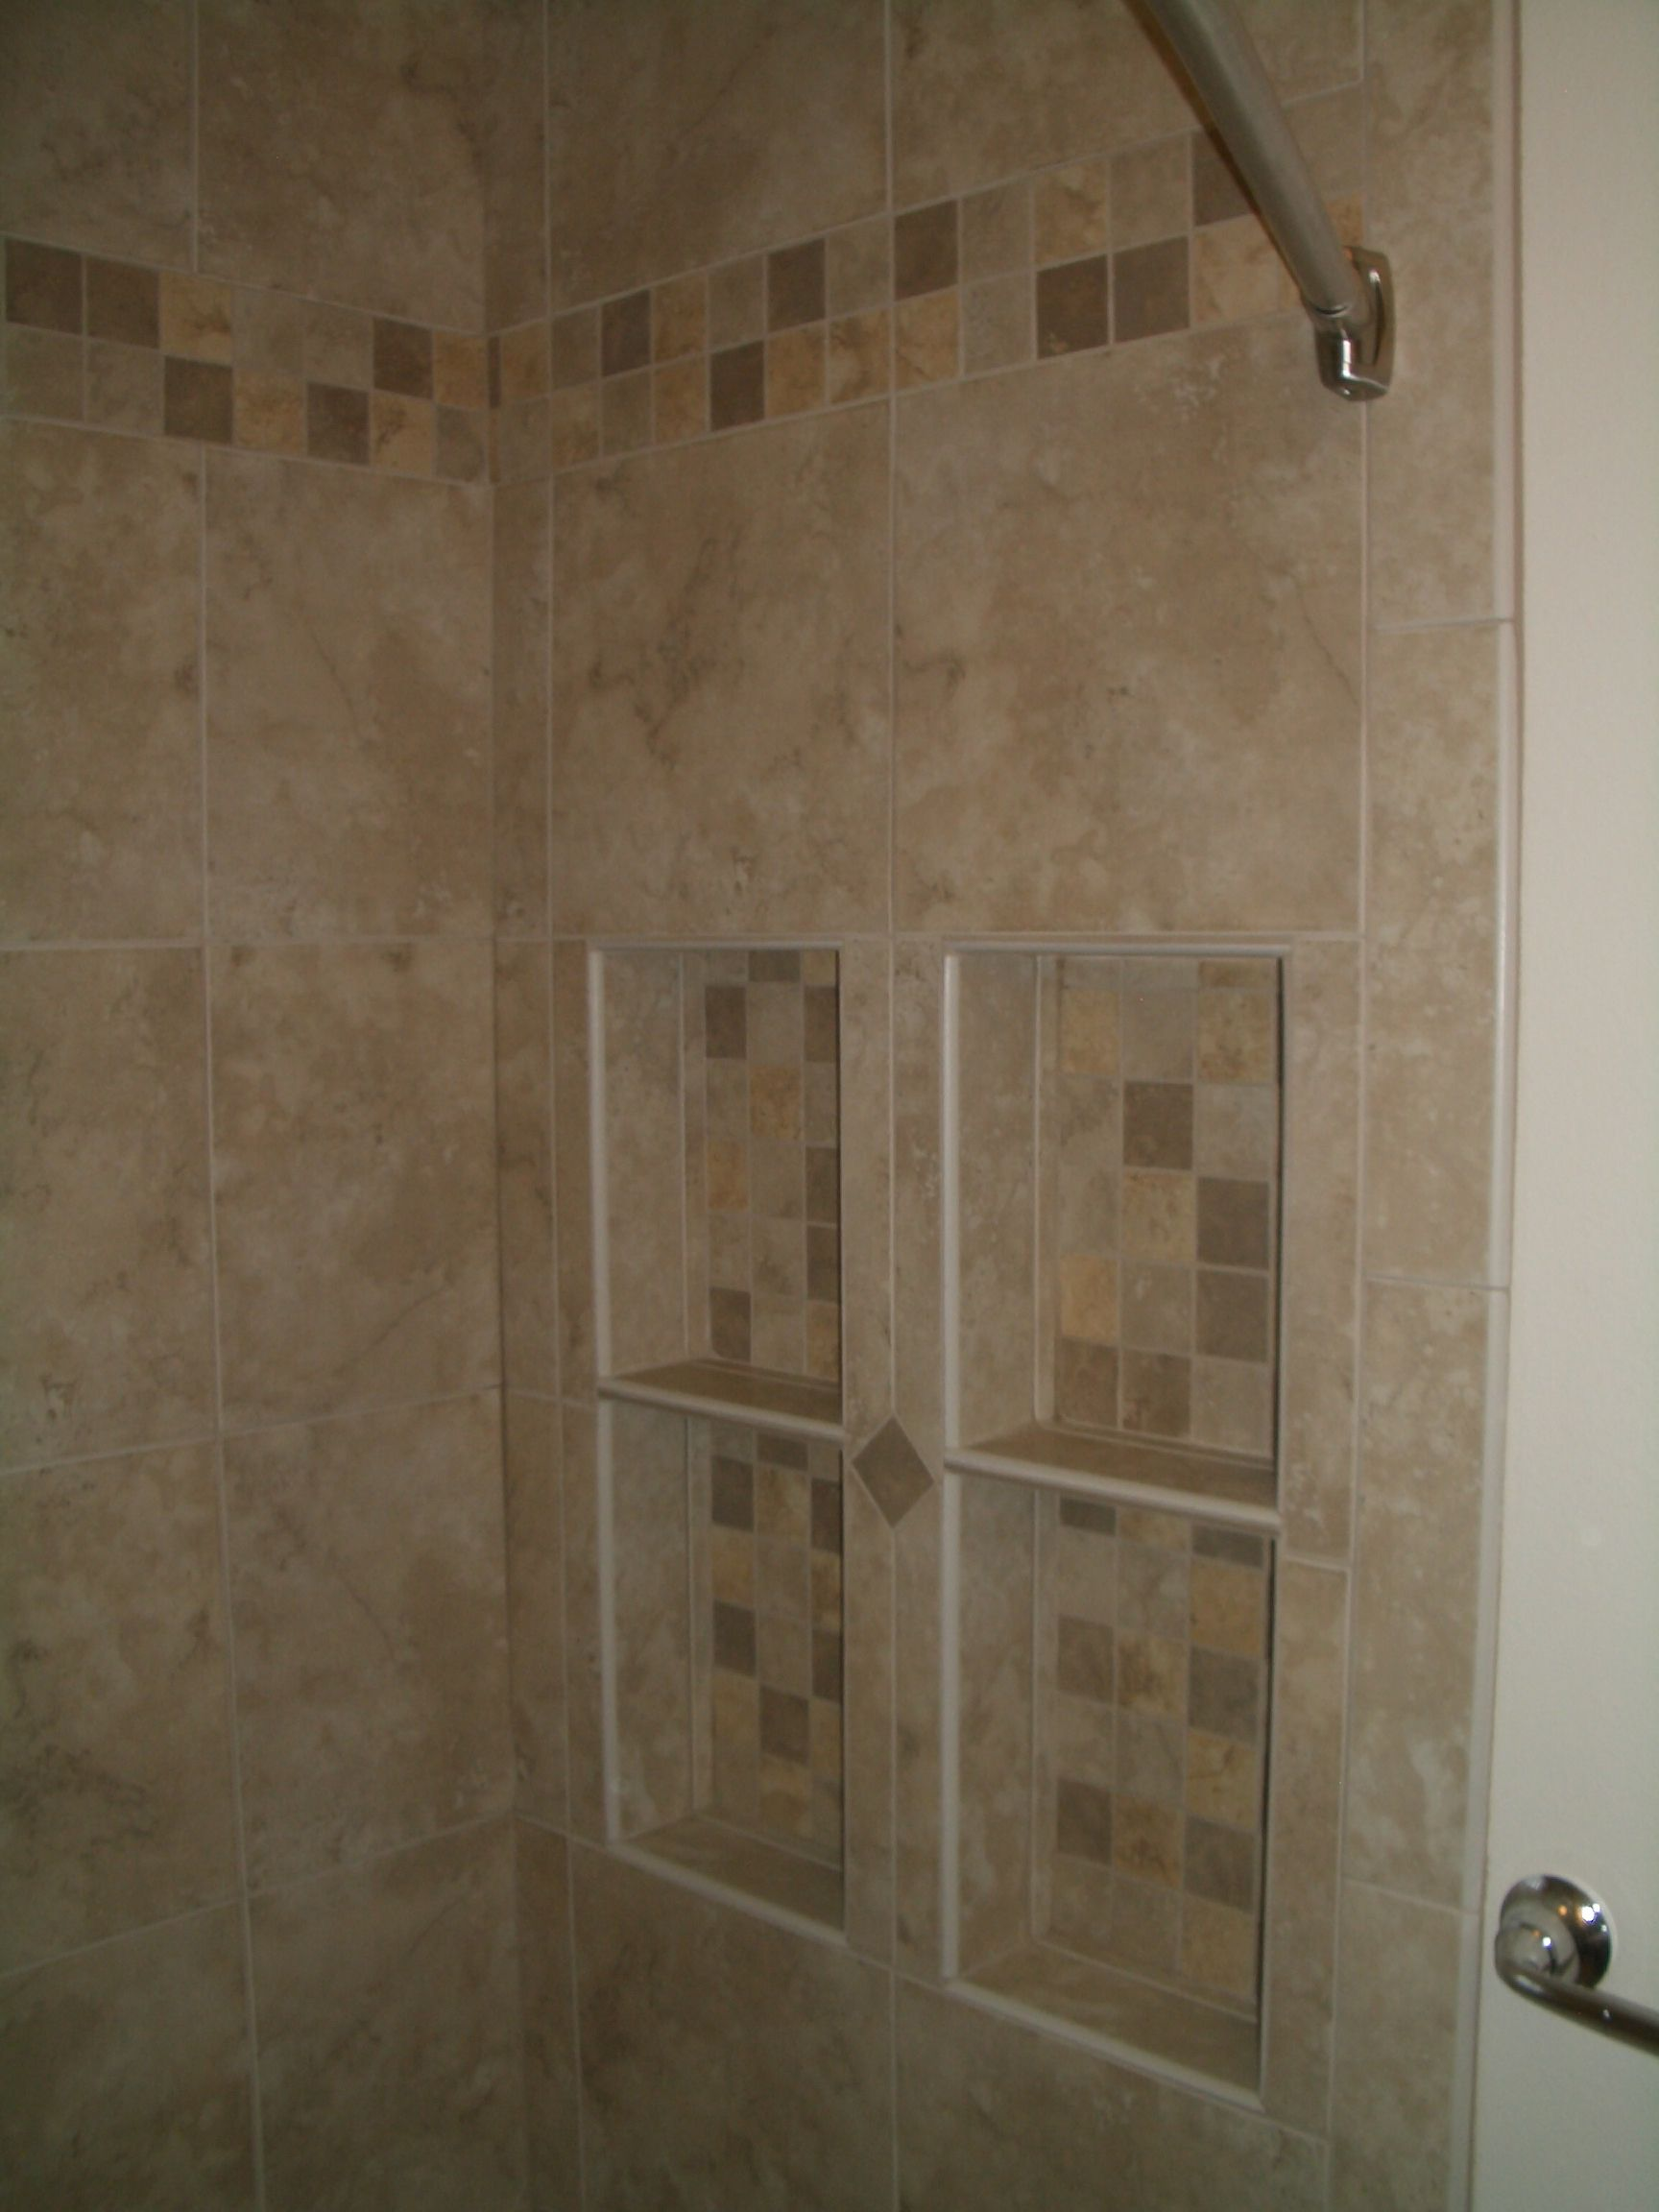 Drywall To Backerboard Transition In Tiled Showers Shower Tile Shower Wall Bathroom Wall Tile